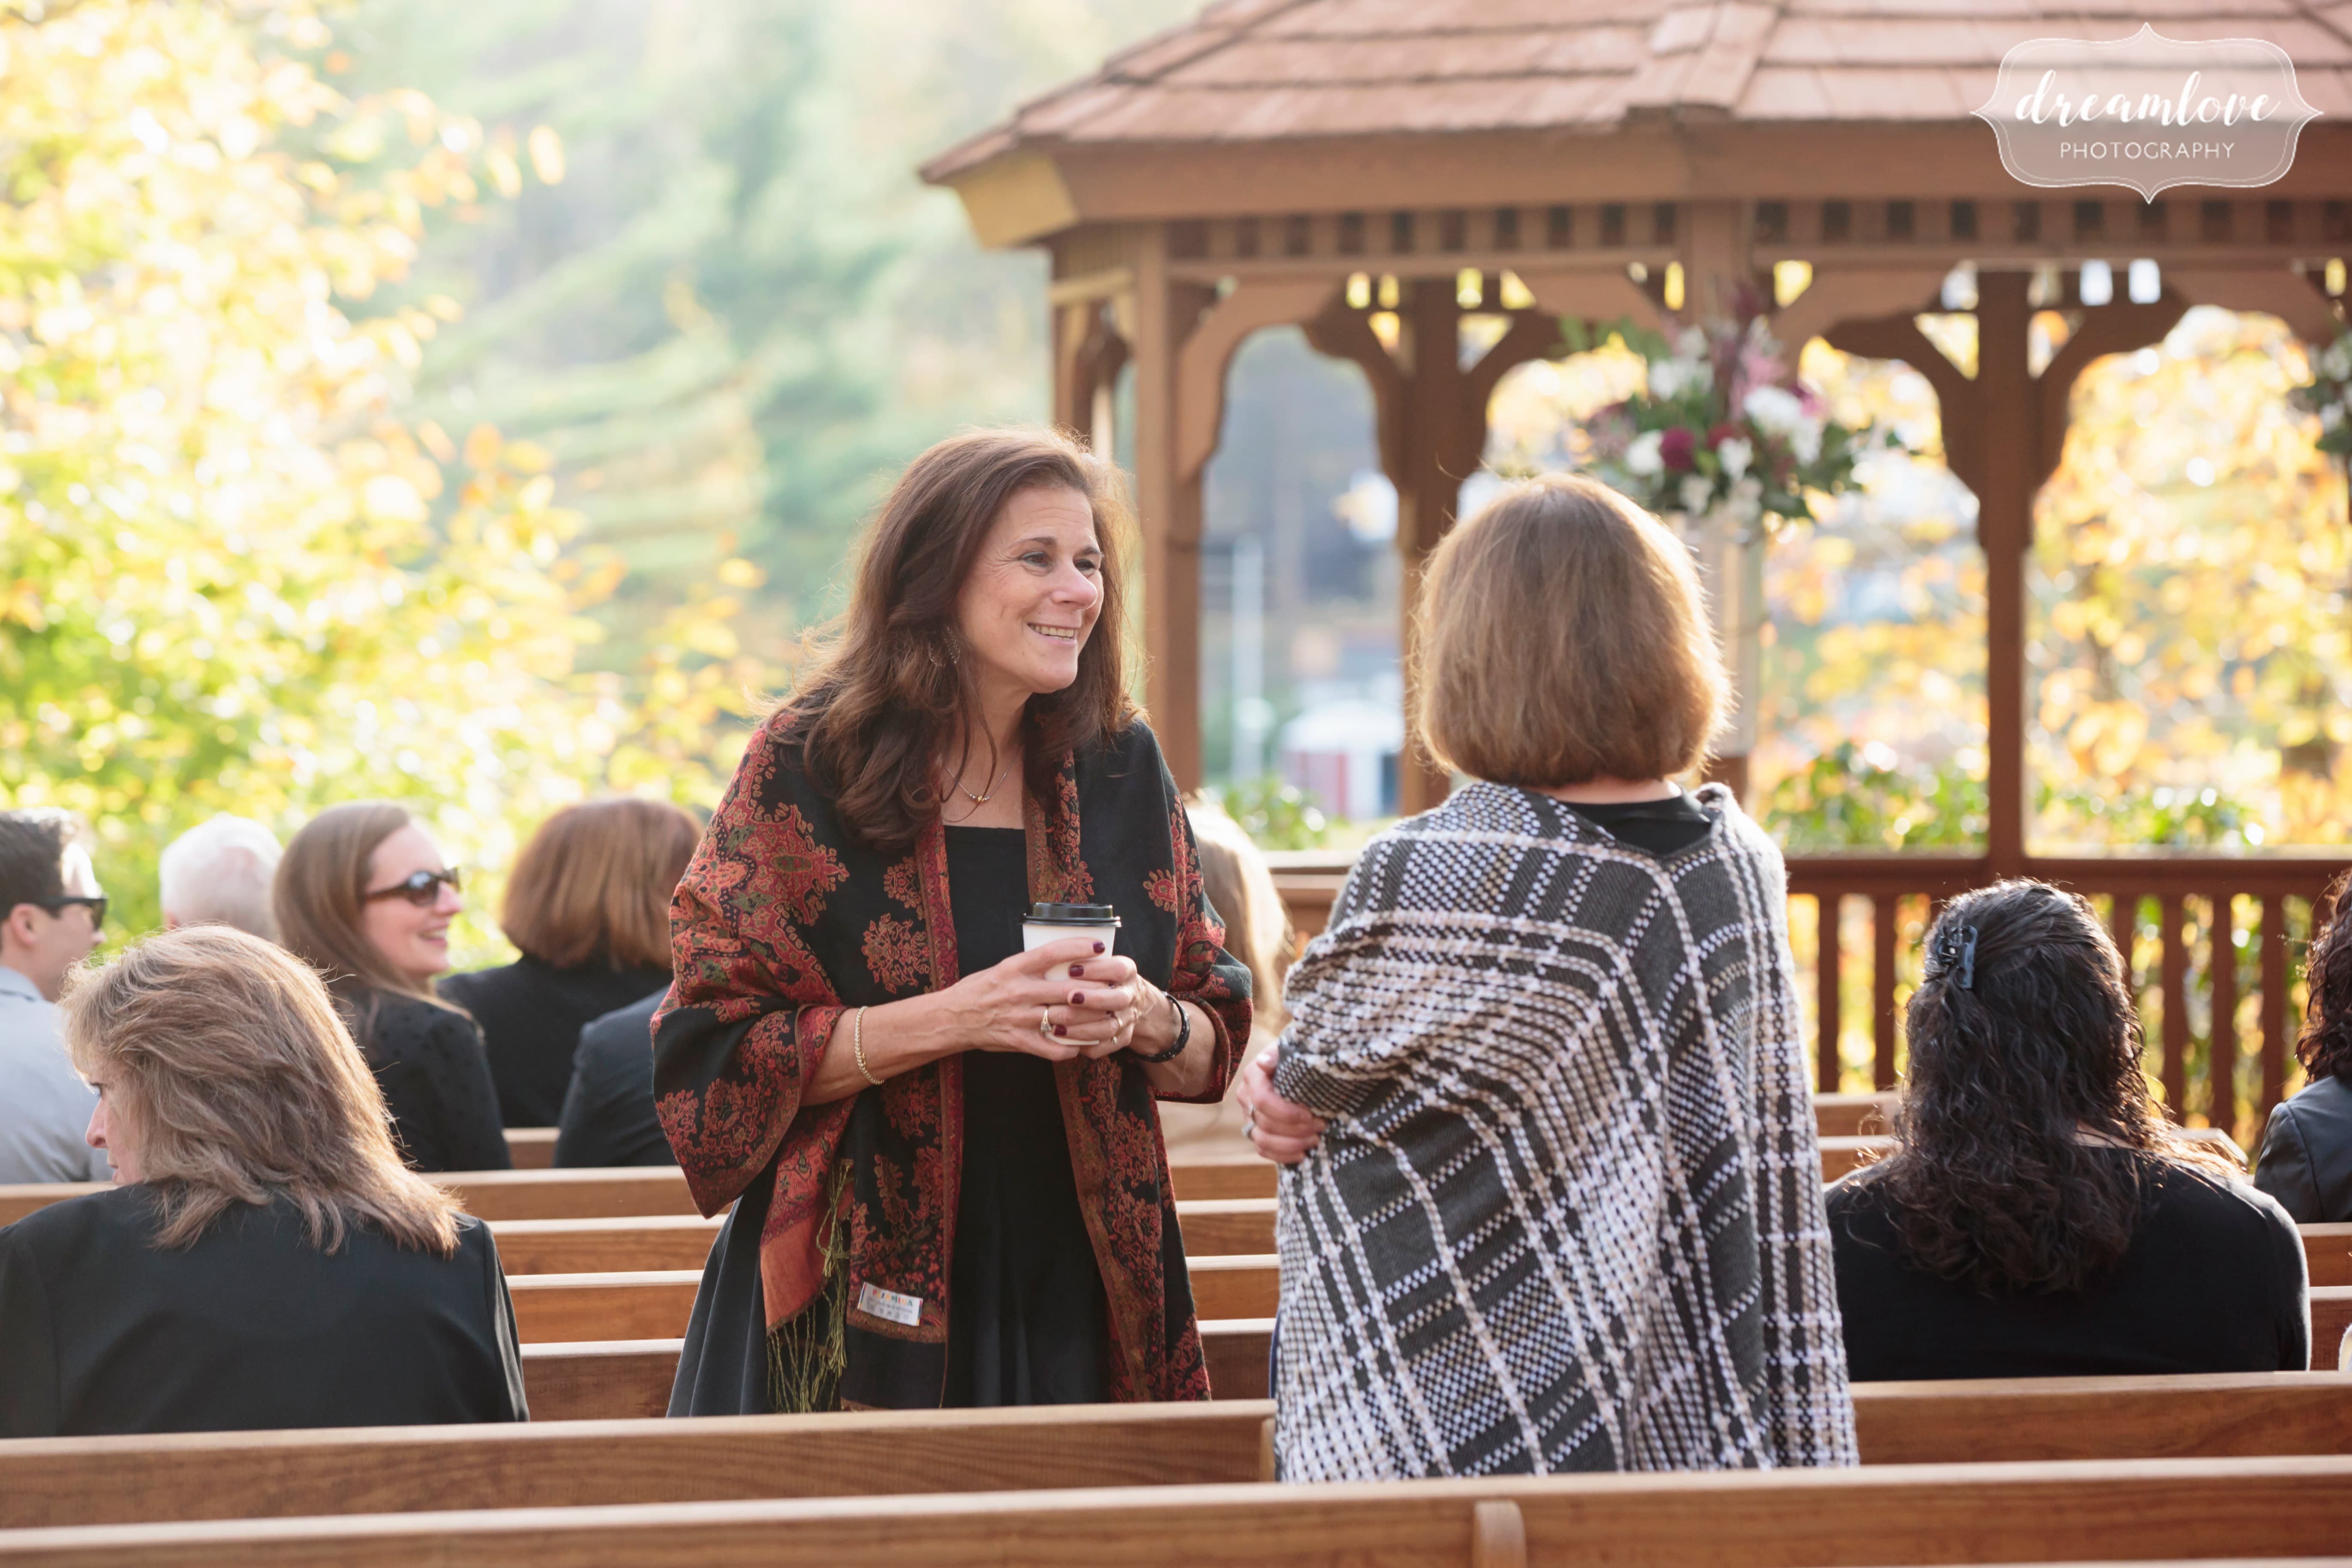 Wedding guests chat with each other before this outdoor woodsy wedding begins.